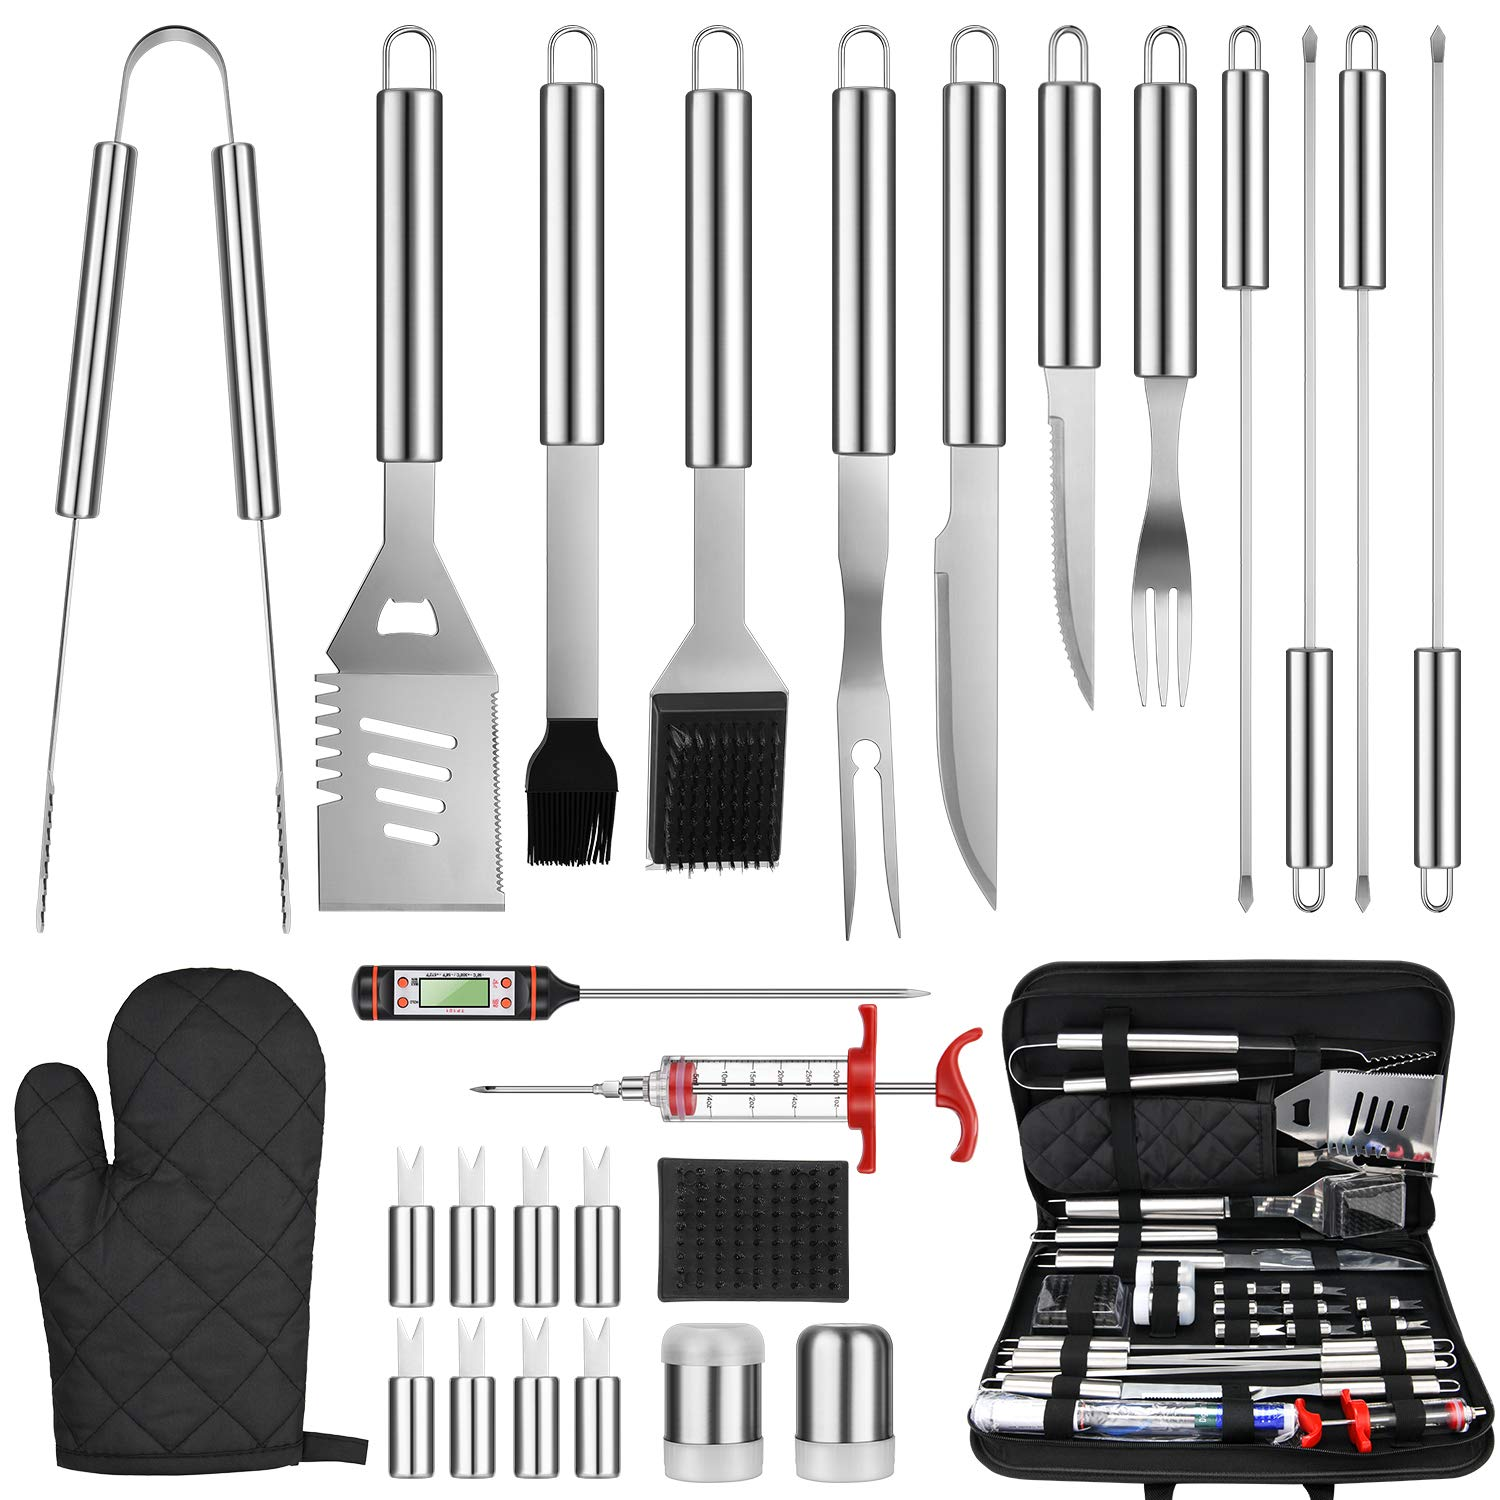 One Sight 27PCS BBQ Grill Accessories Tools Set, Stainless Steel Grilling Kit with Oxford Cloth Case, Grill Utensil Set Barbecue Tool Set for Men Women, Barbeque Accessories with Thermometer and Meat